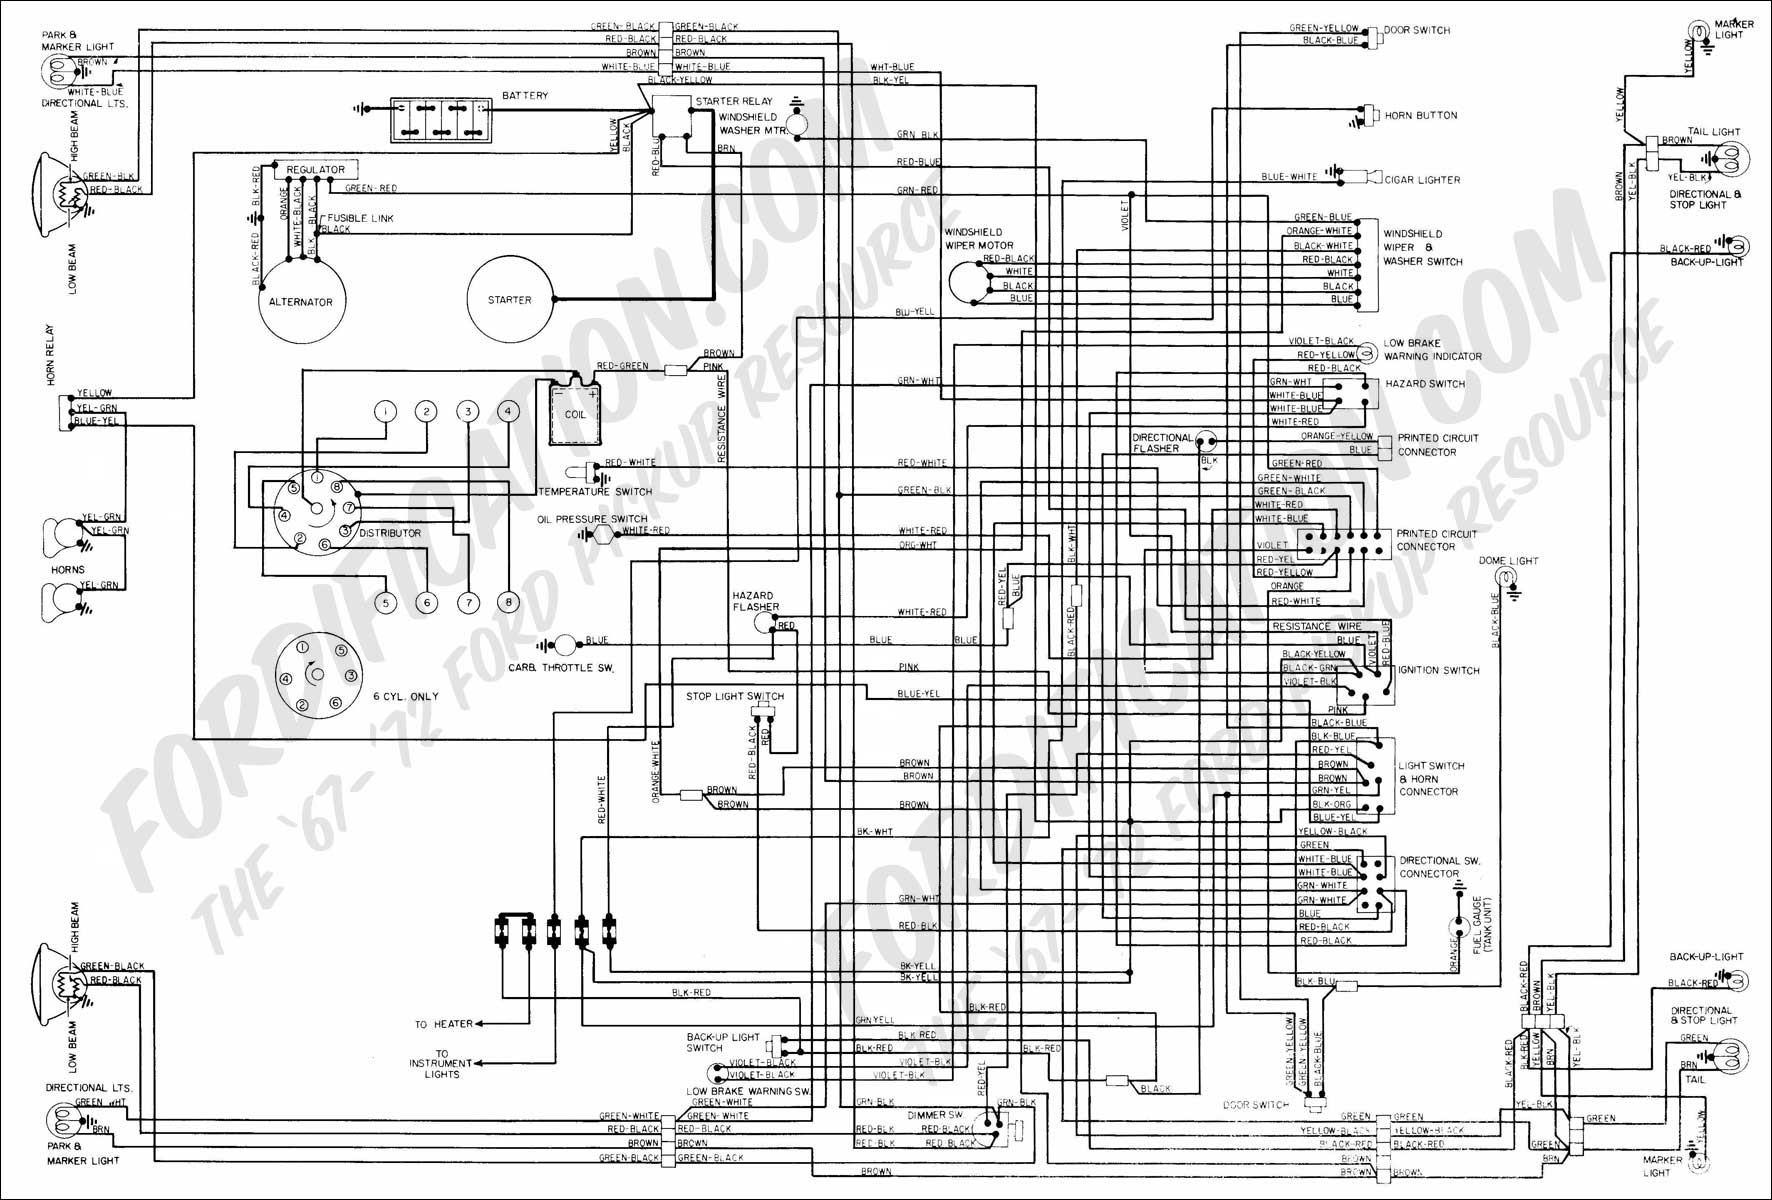 wiring diagram 72_quick 2002 ford f250 wiring diagram efcaviation com 1999 ford f350 wiring diagram at nearapp.co